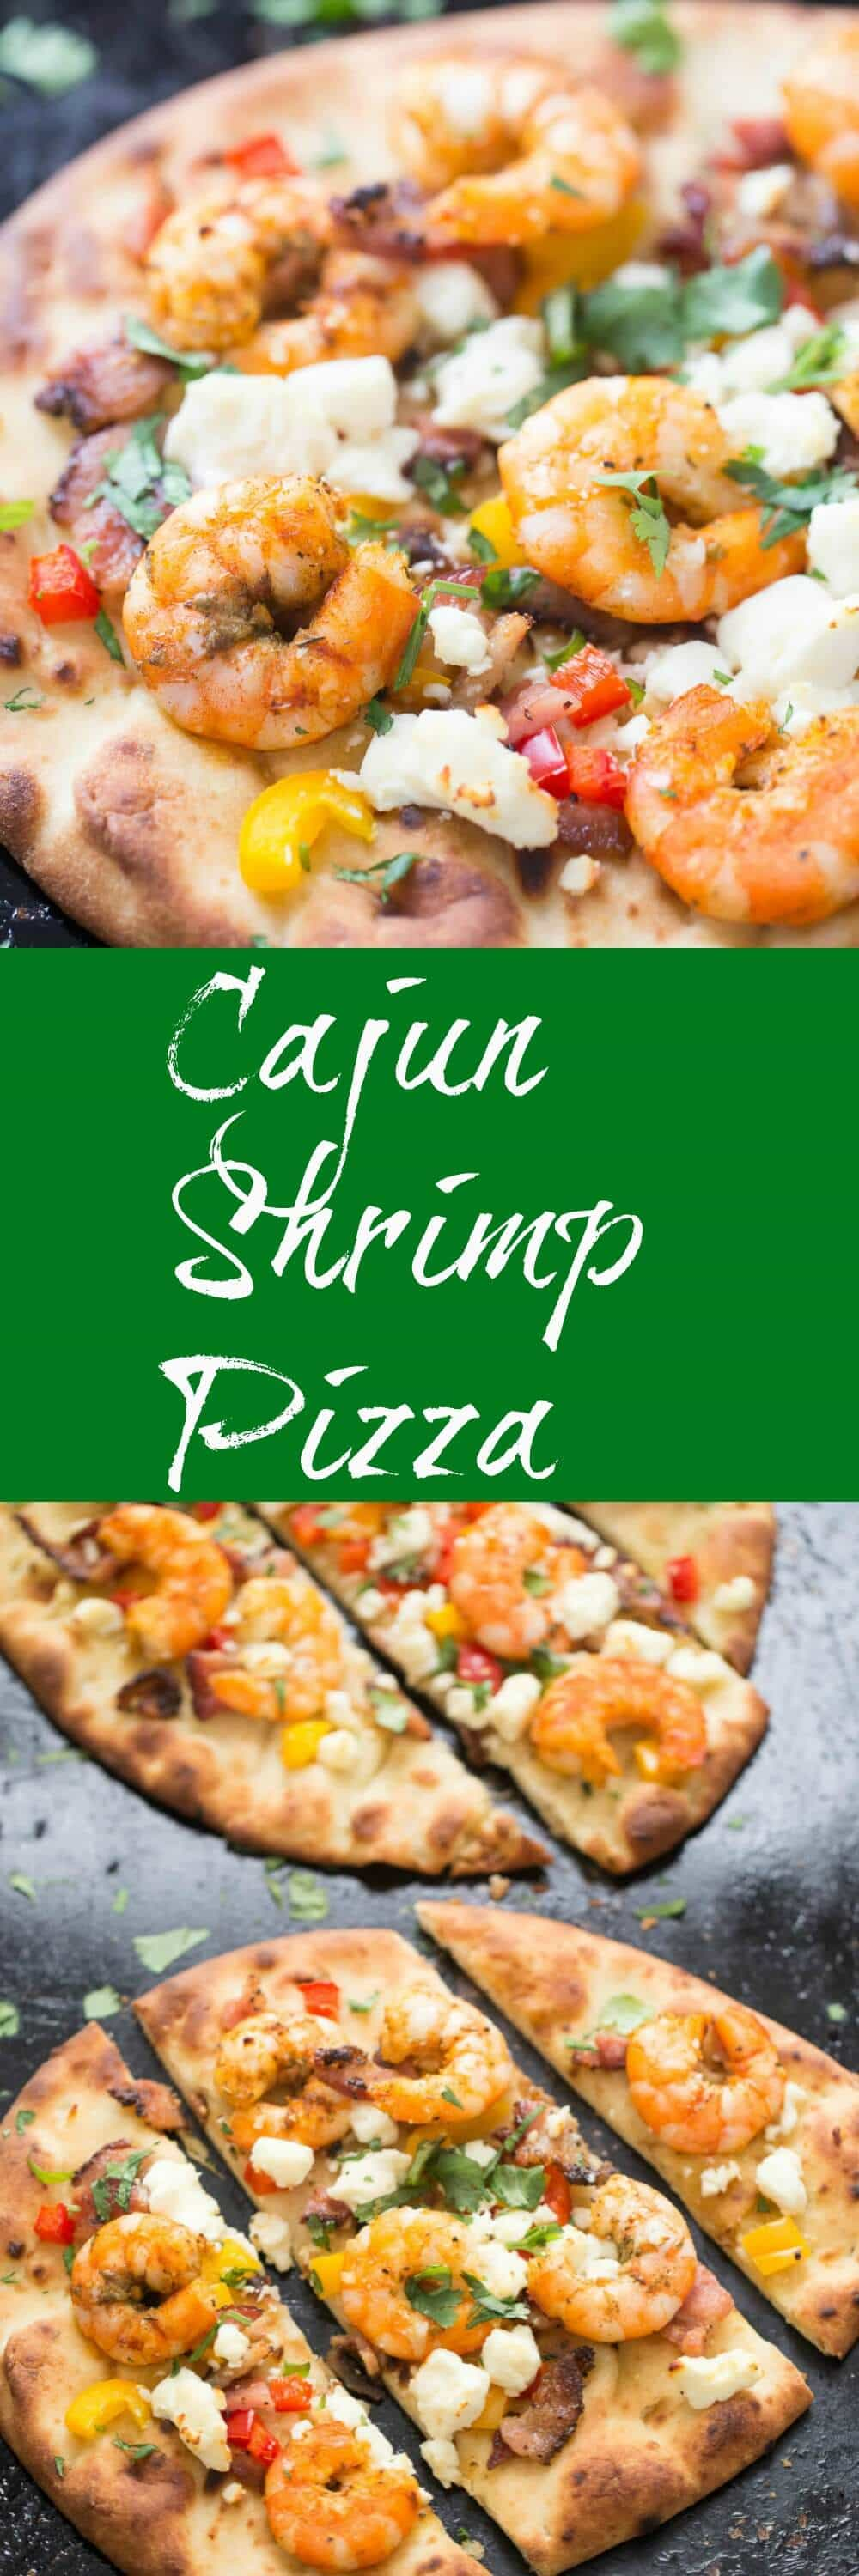 This naan bread Cajun shrimp pizza is so easy to prepare! It can be served as an appetizer or a meal; your friends and family are going to love it!